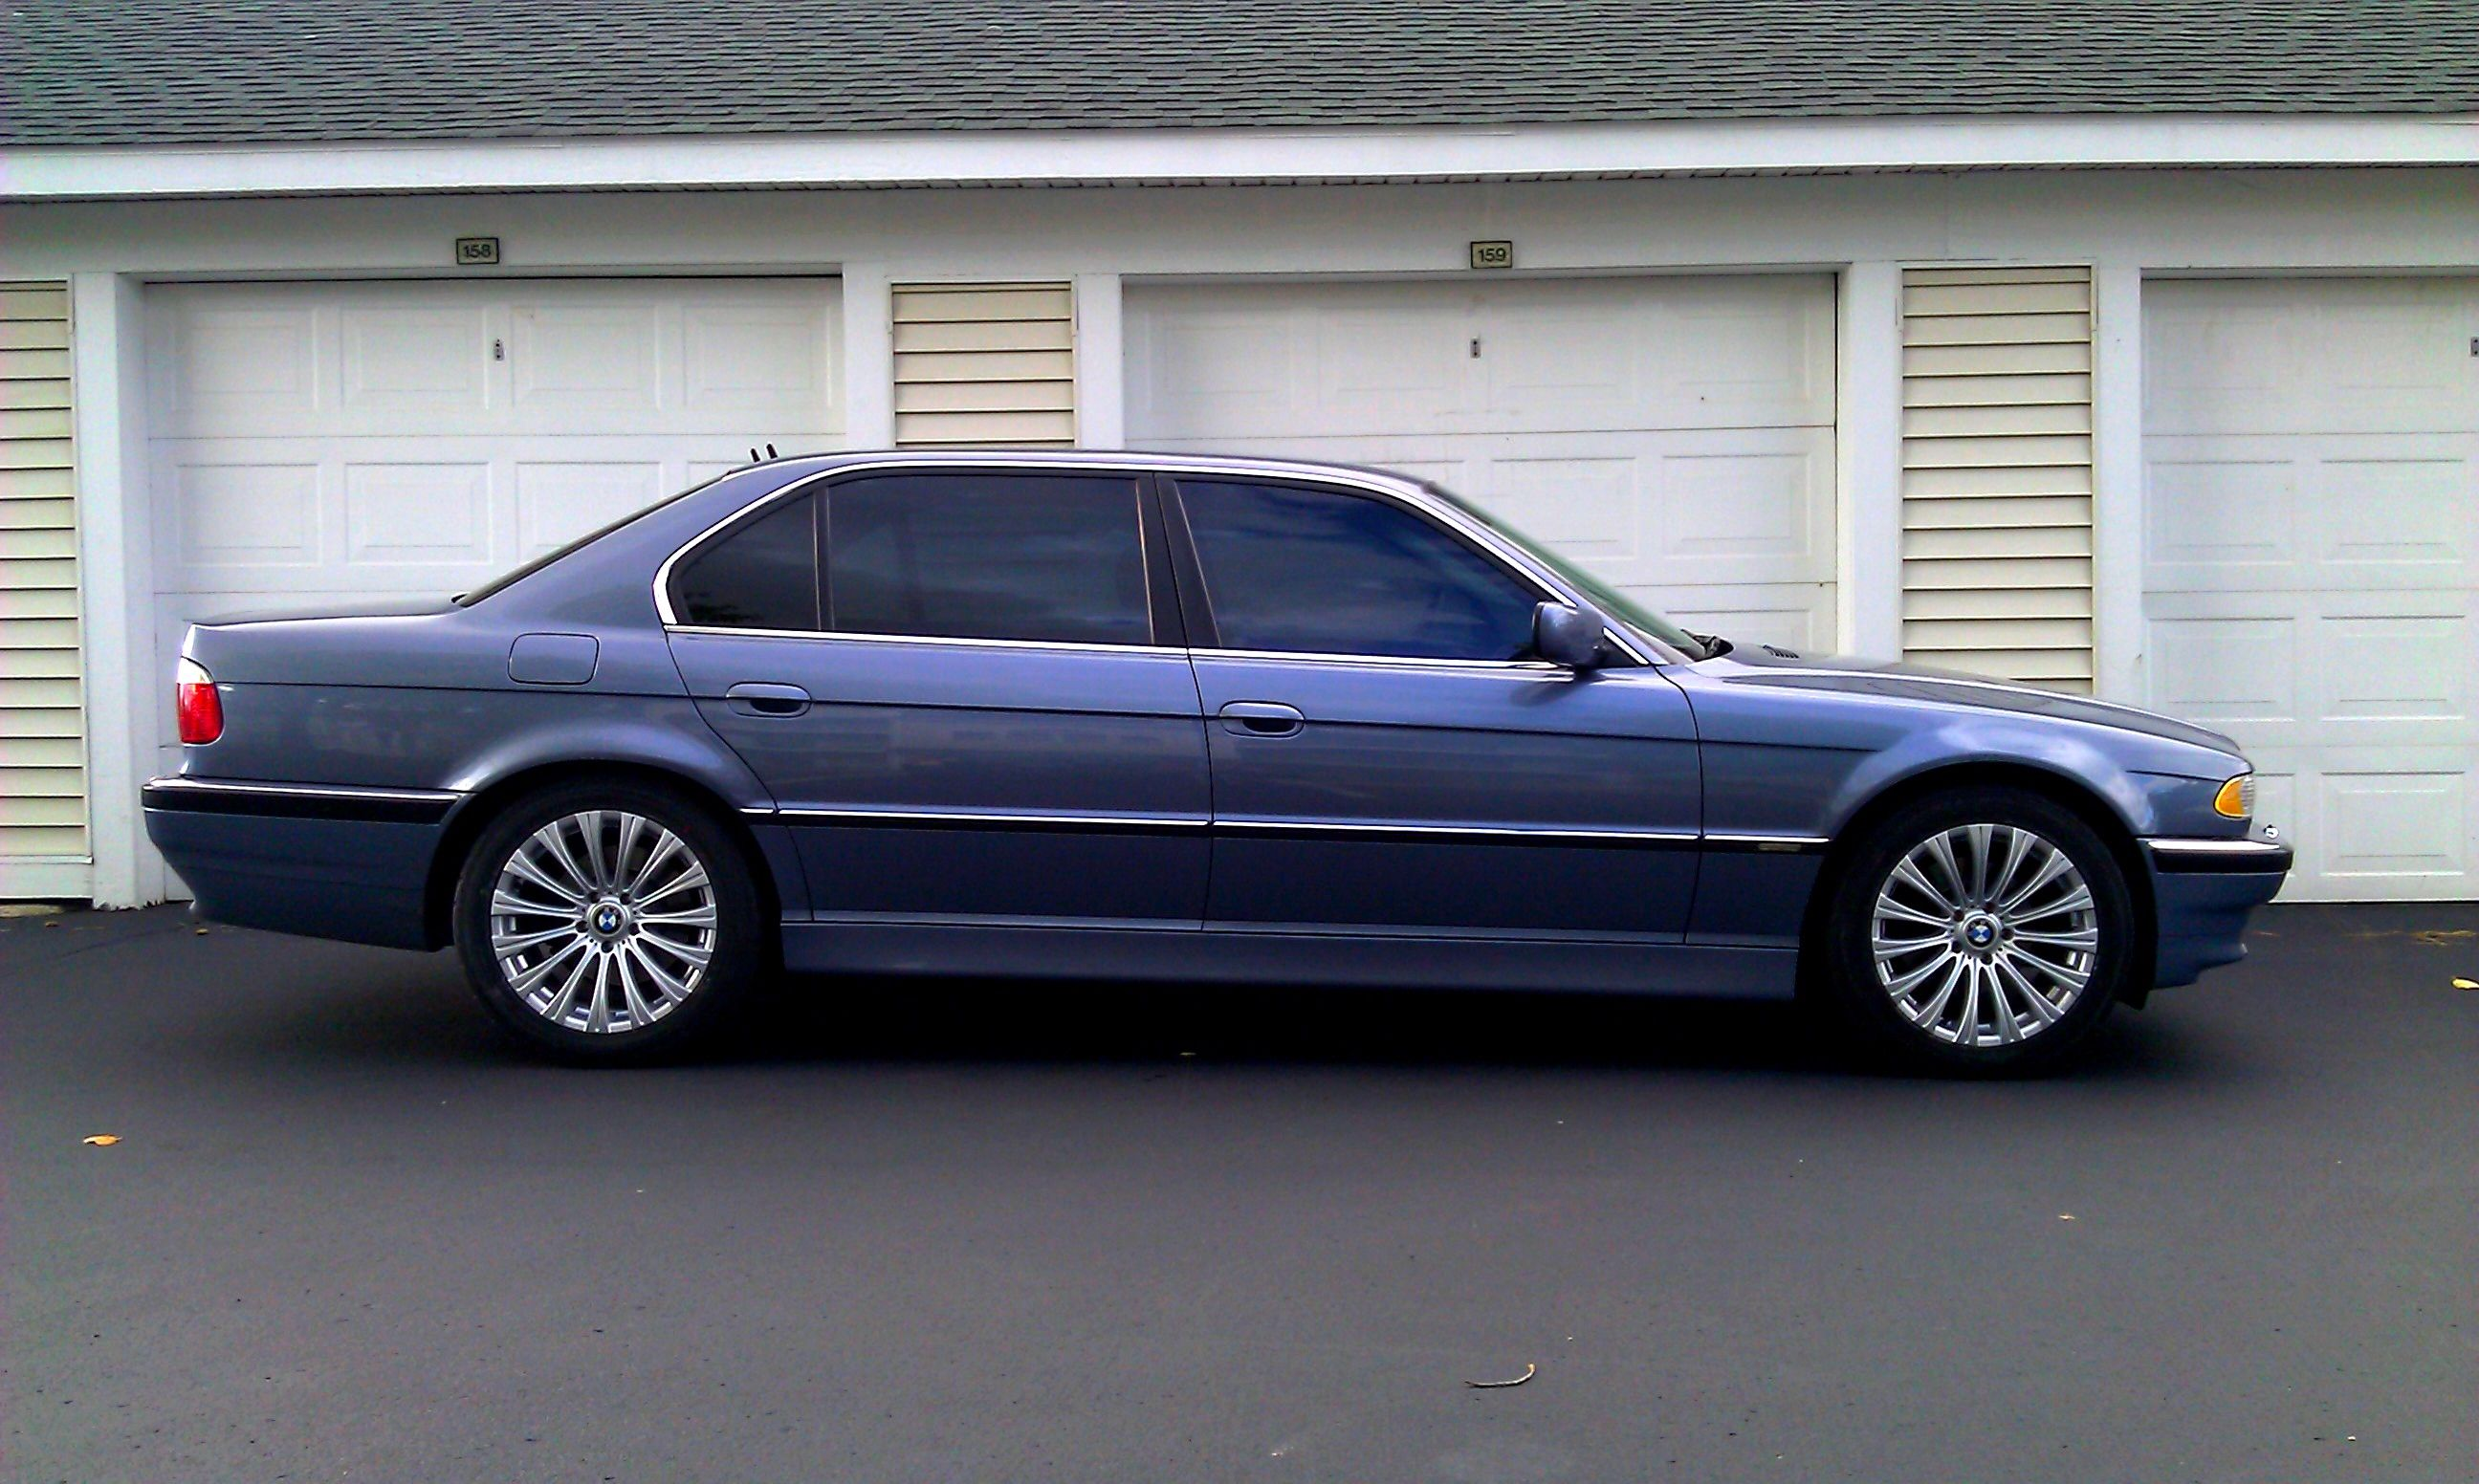 New Wheels For My 2001 BMW E38 Lang In Stahlblau